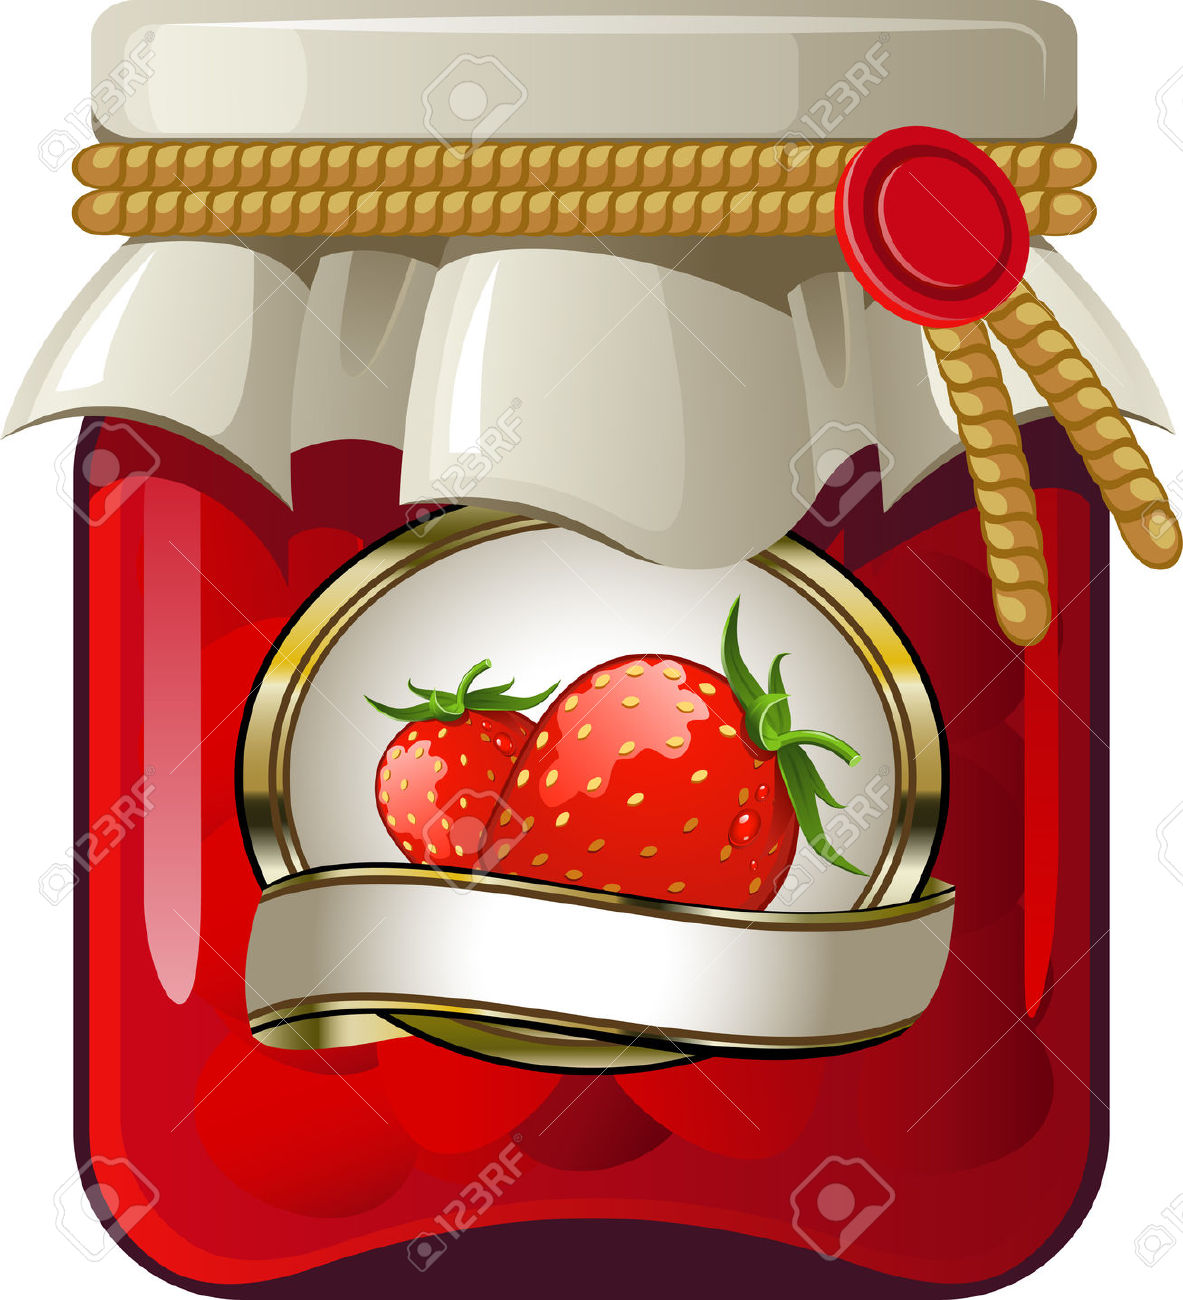 jams clipart clipground lawn mower clip art free lawn mower clipart side view